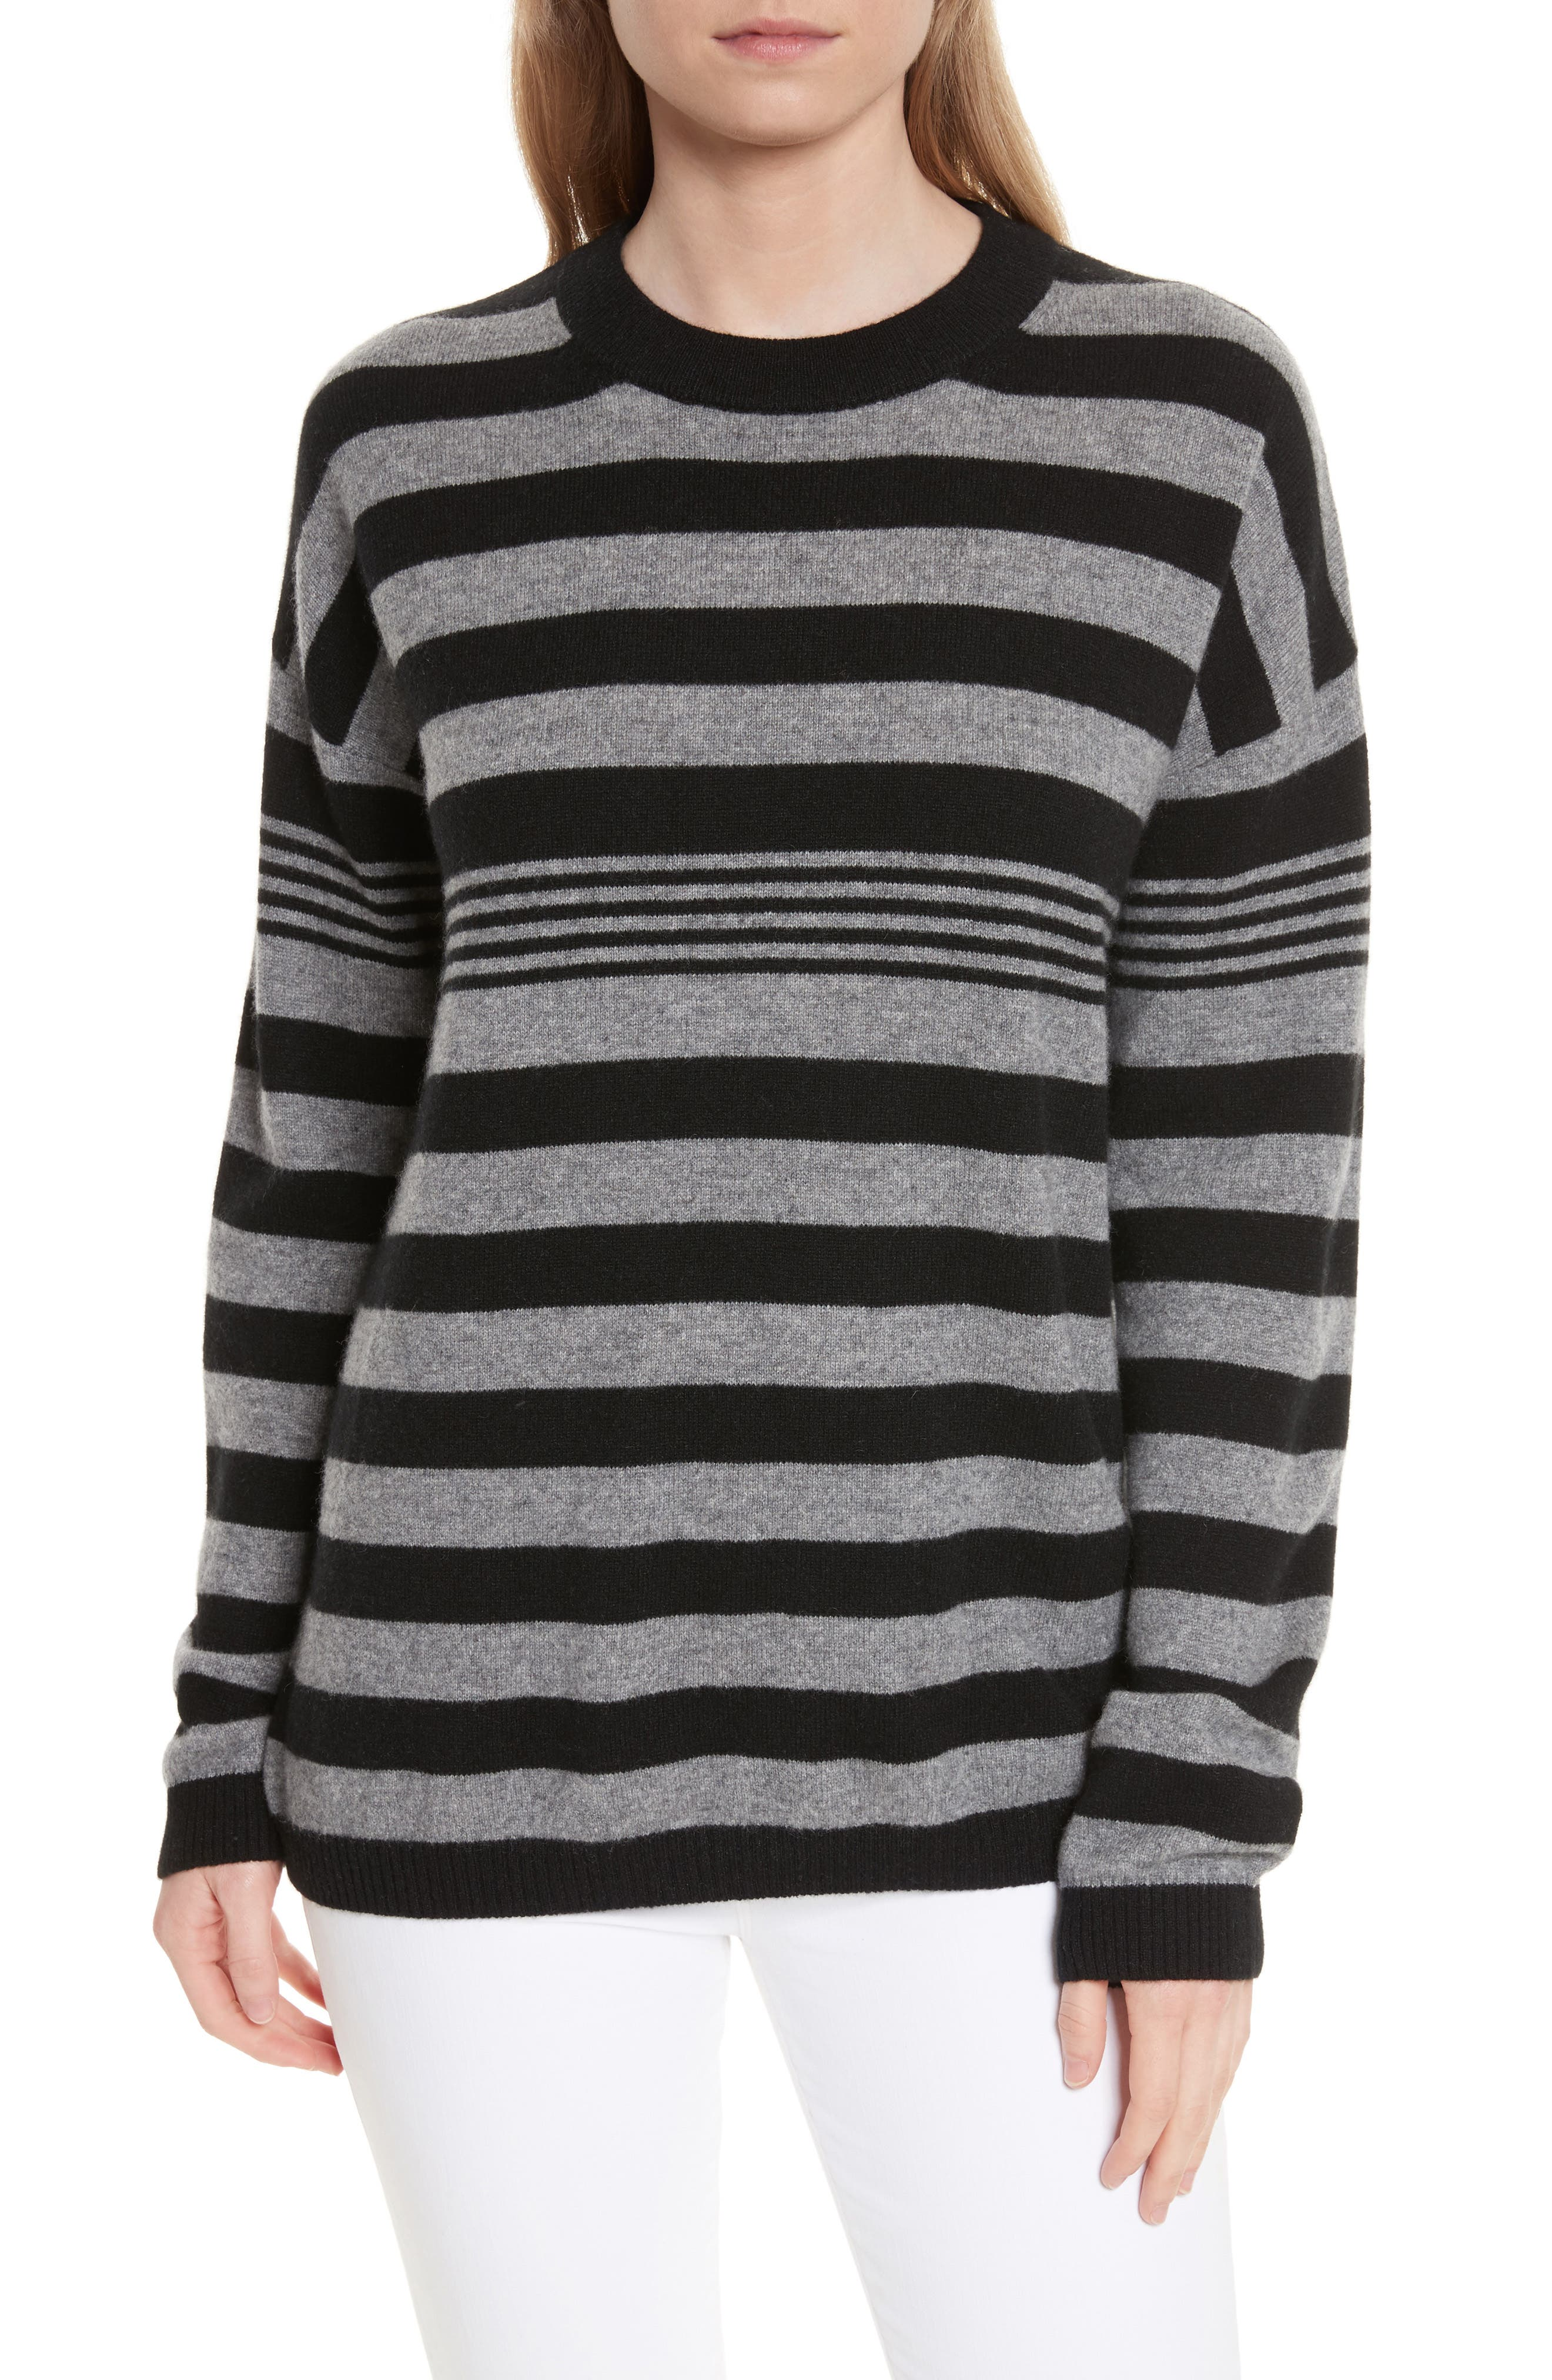 Bryce Crew Cashmere Sweater,                         Main,                         color, Heather Grey/ Black